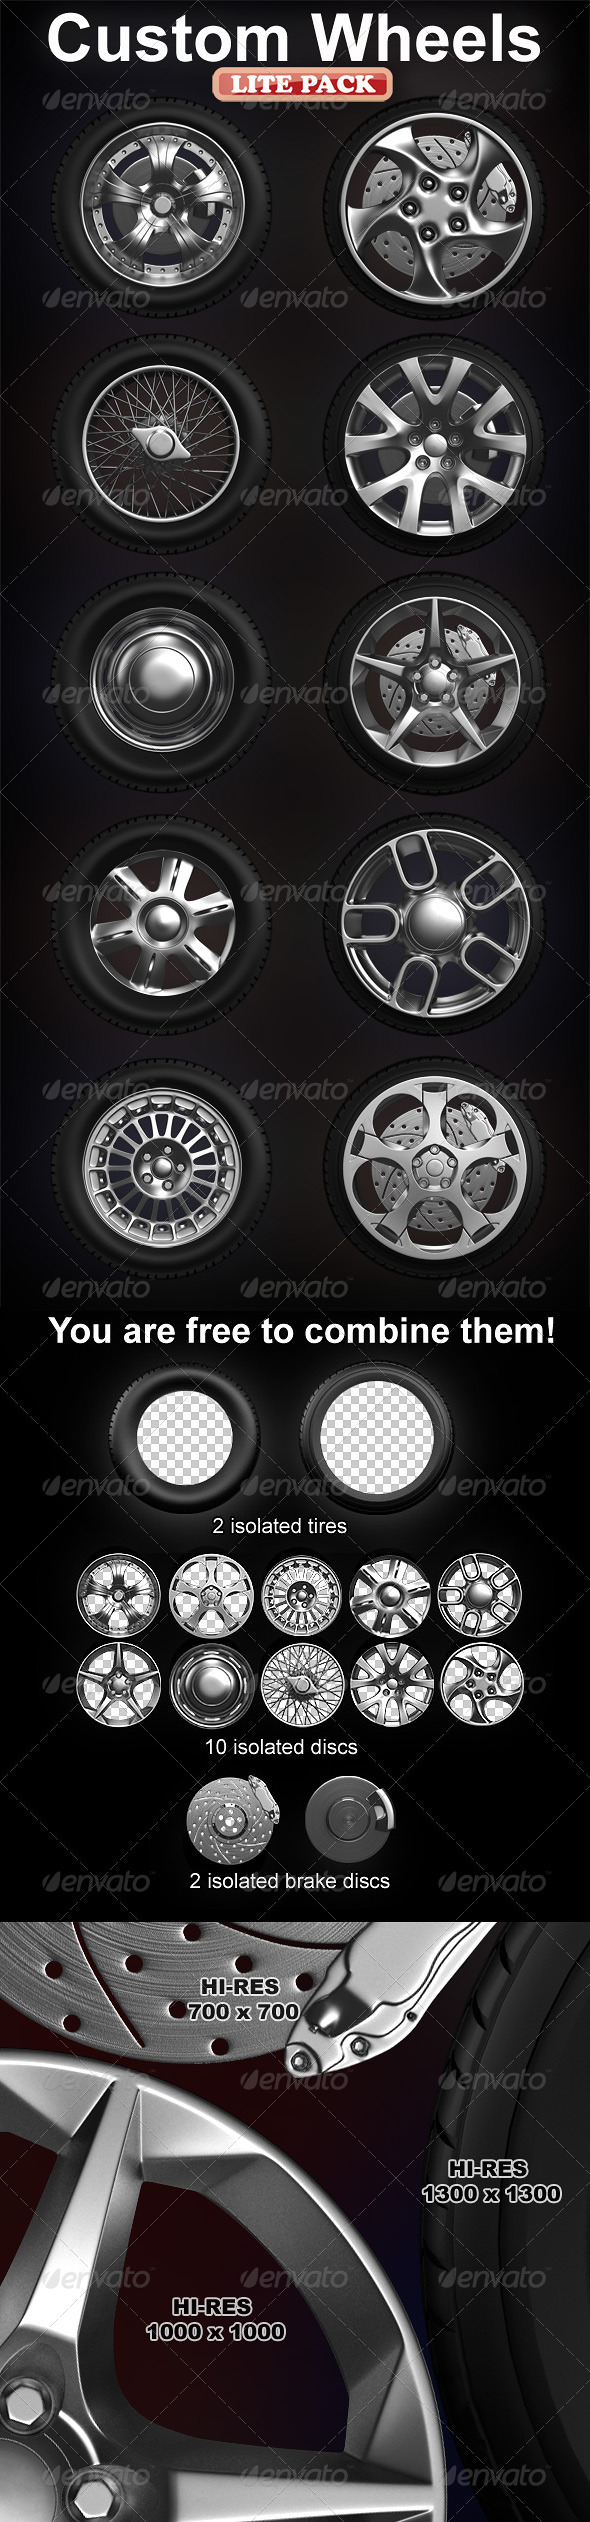 GraphicRiver Isolated custom wheels pack 2 tires 10 discs 1573951